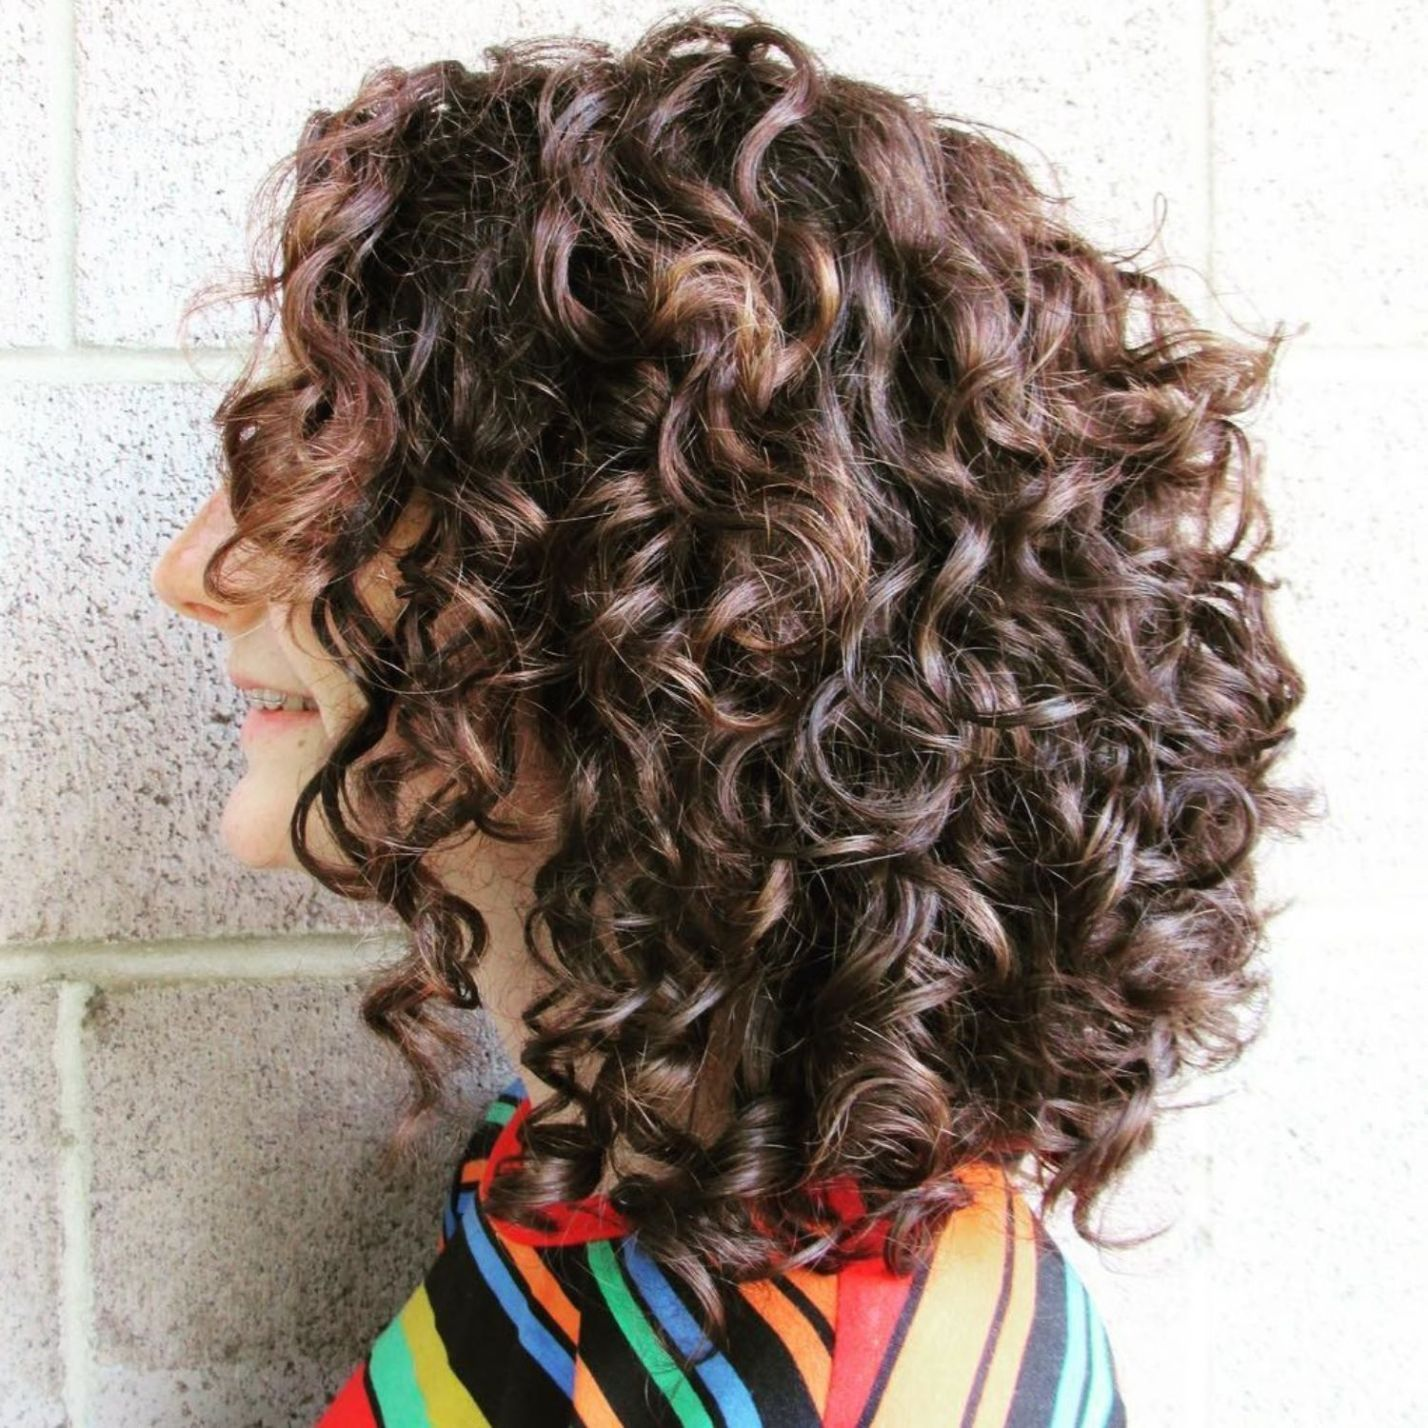 60 styles and cuts for naturally curly hair in 2019 | hair